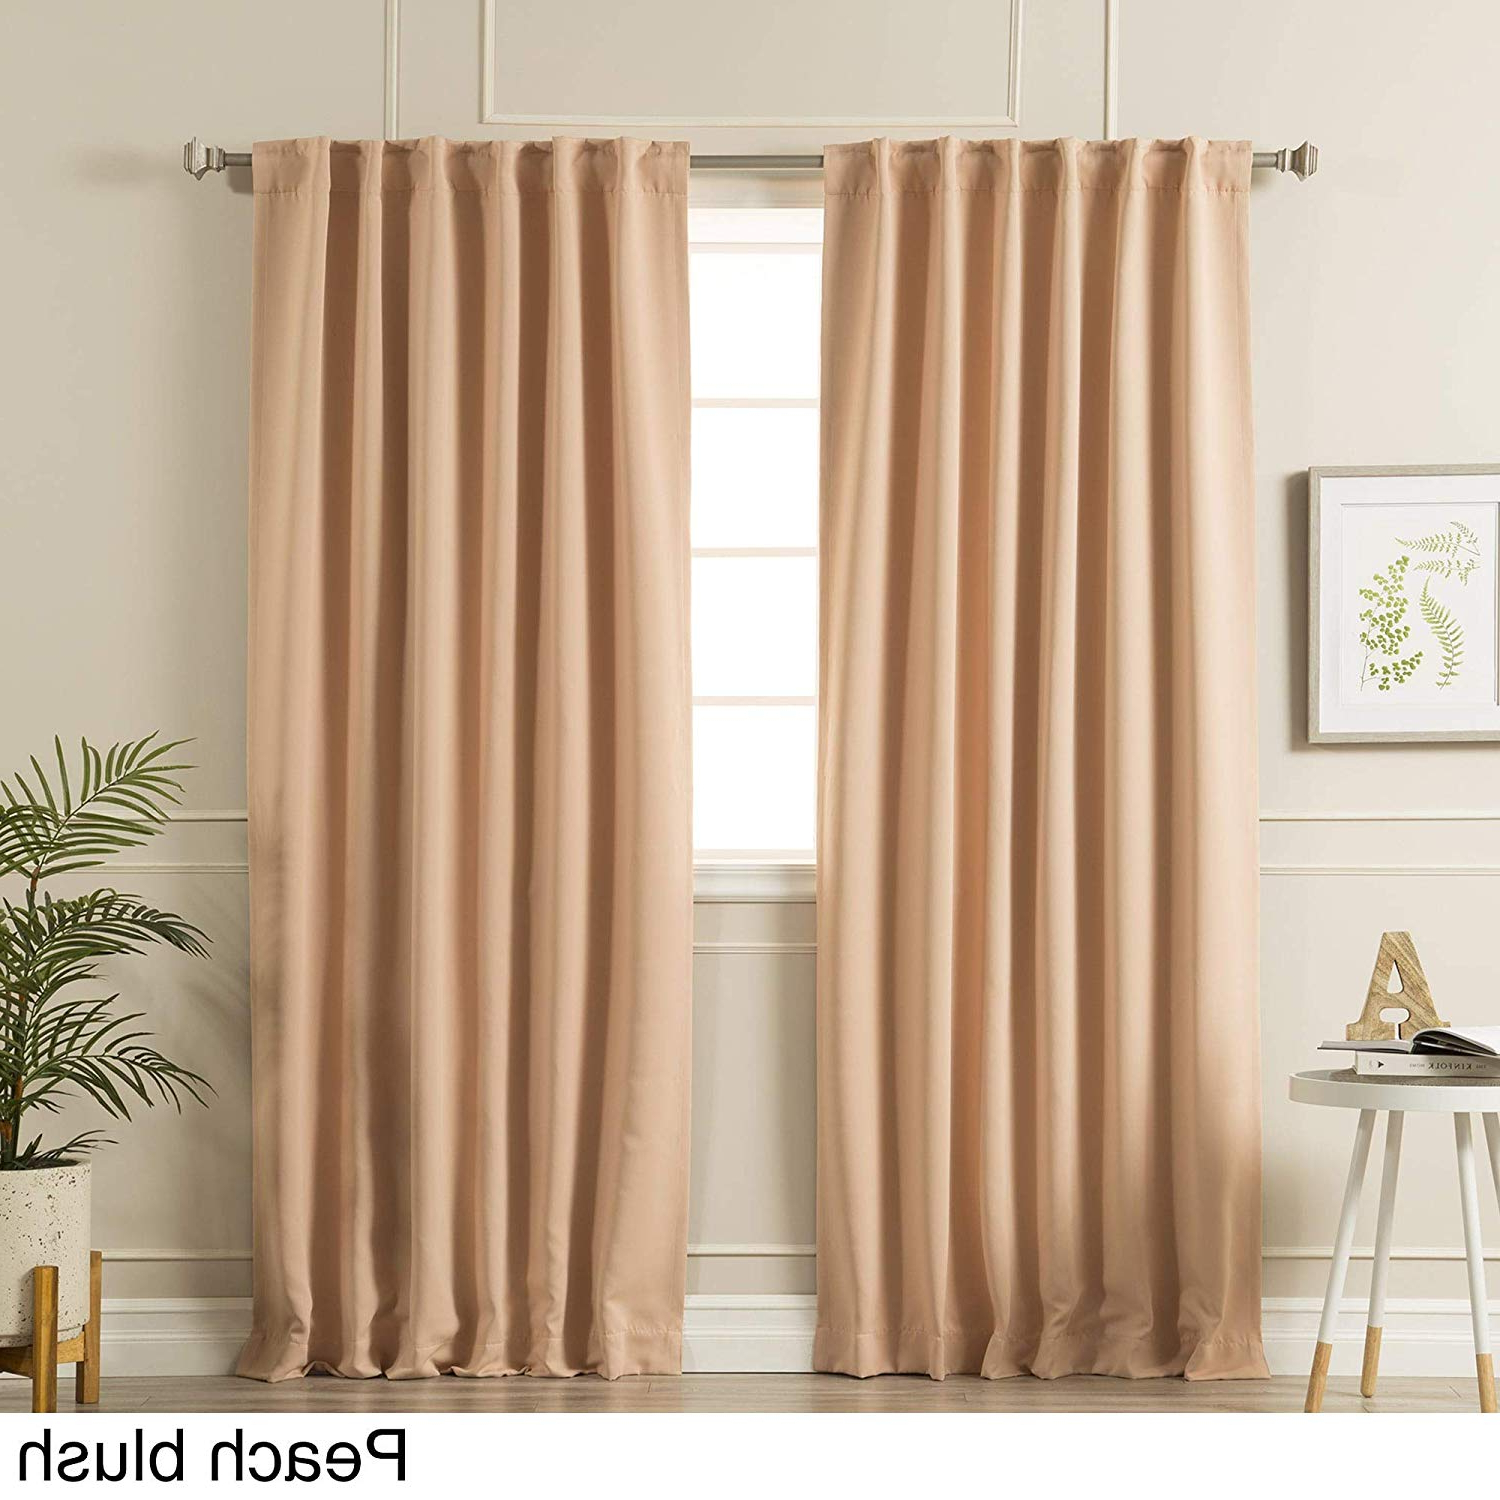 Insulated Thermal Blackout Curtain Panel Pairs Within Popular Amazon: Aurora Home Solid Insulated Thermal Blackout (View 4 of 20)